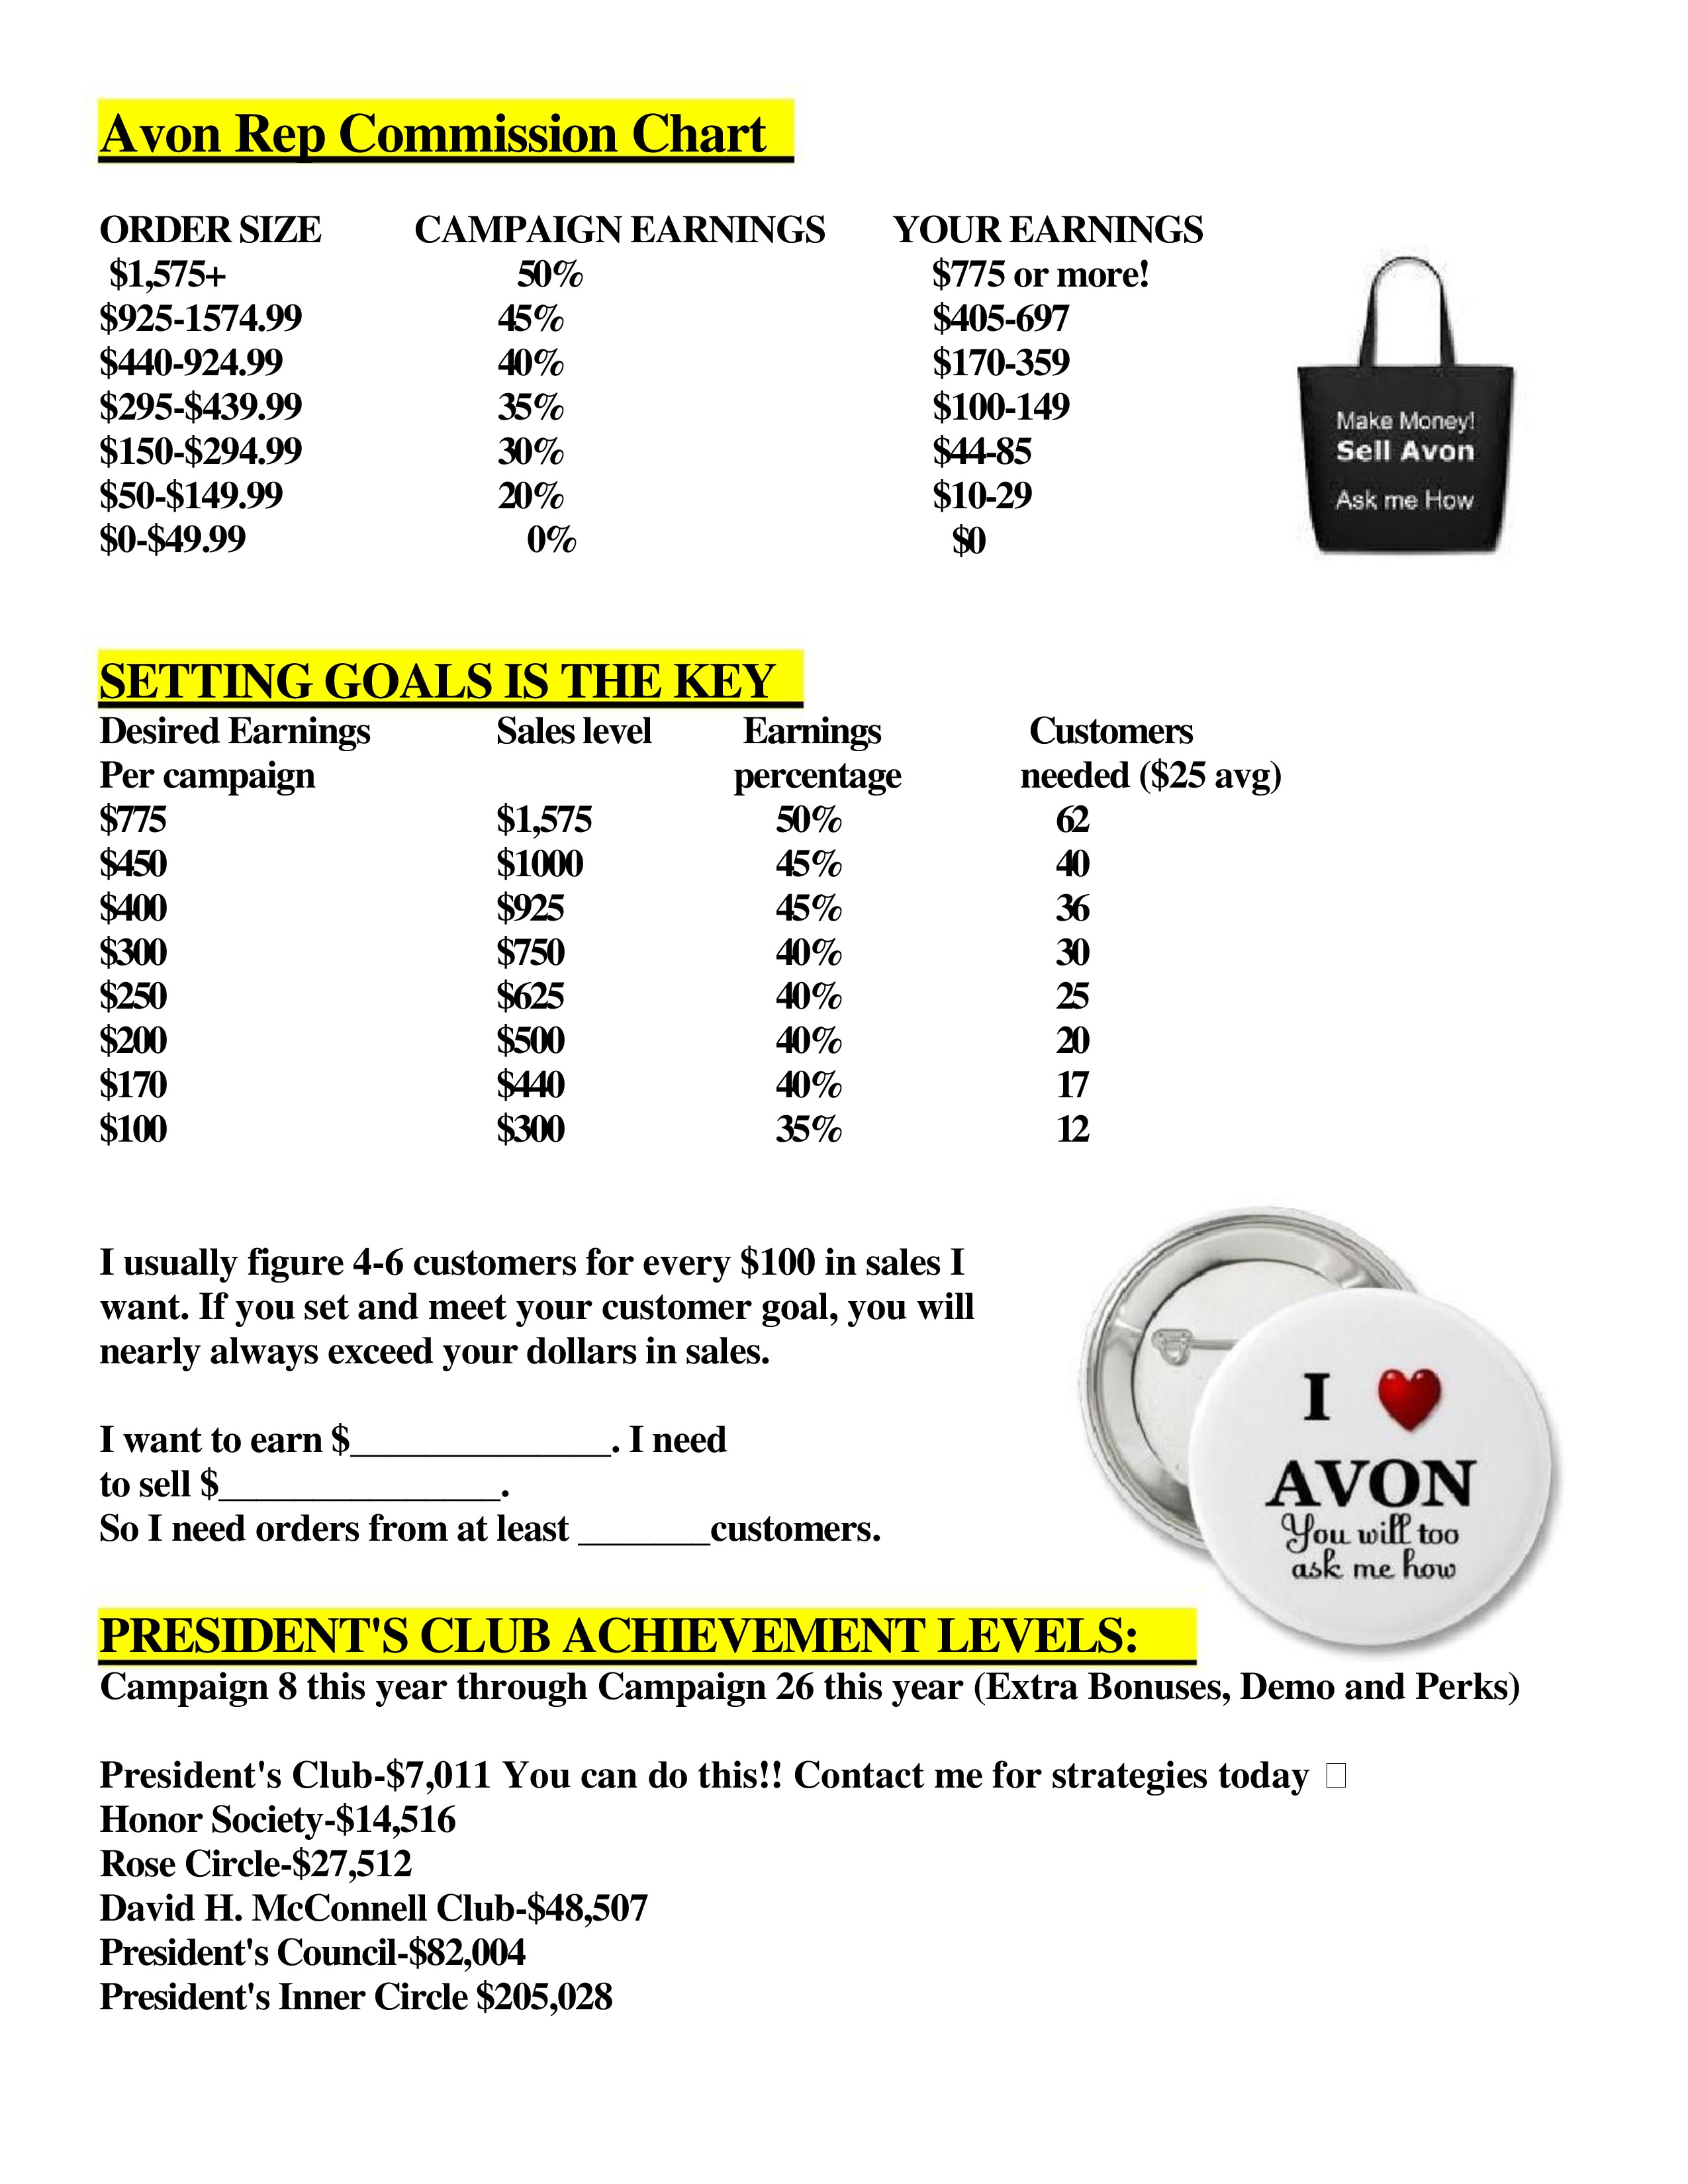 How Much Money Can You Make Selling Avon